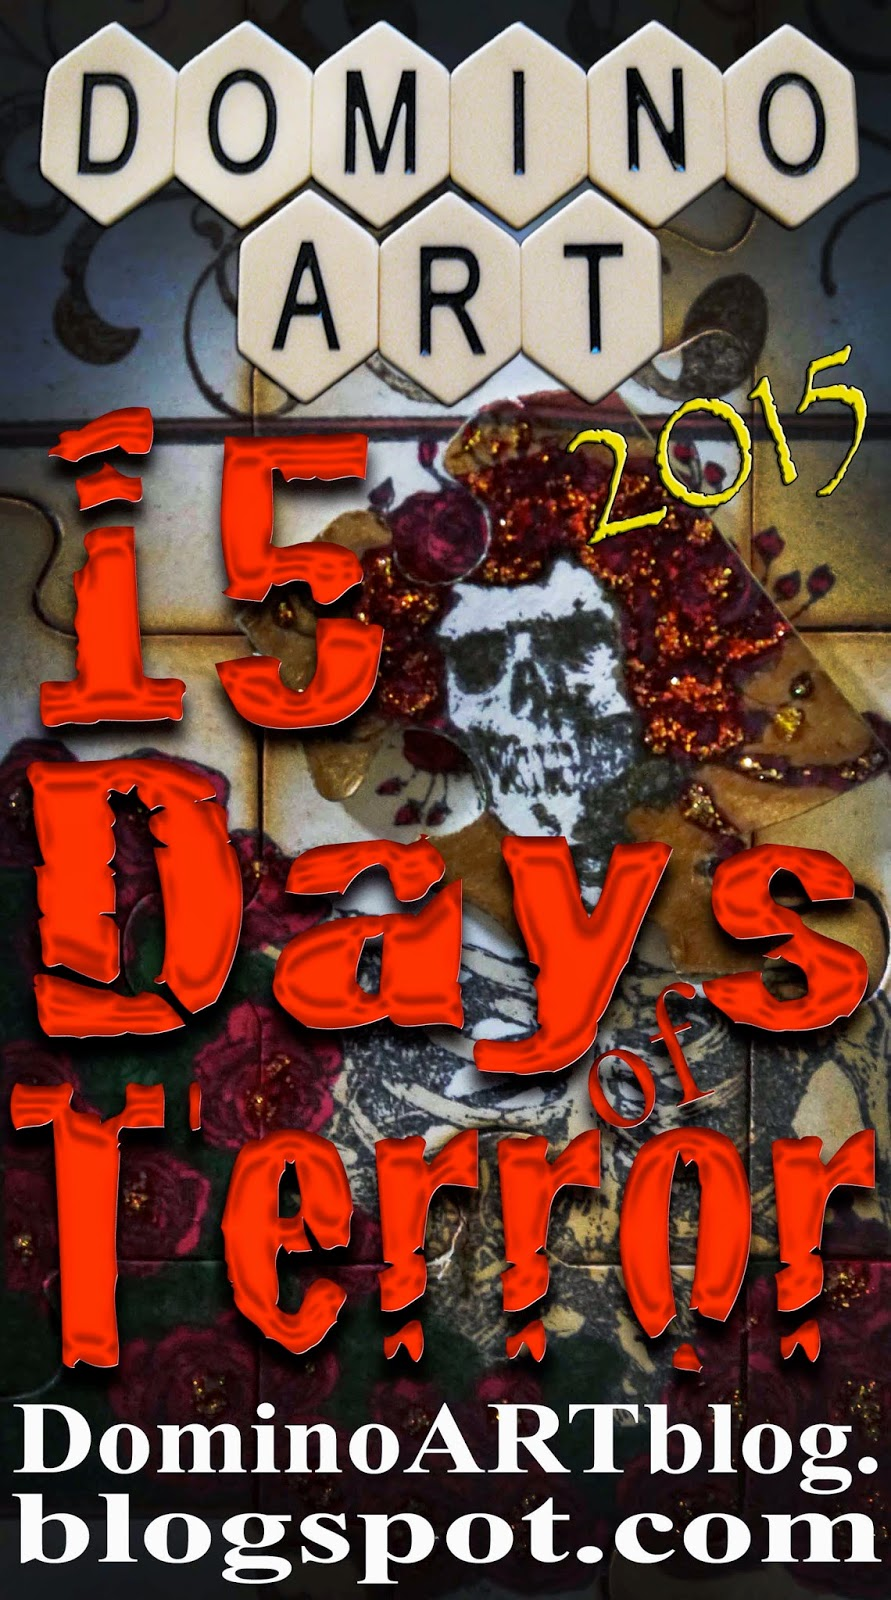 http://dominoartblog.blogspot.com/p/15-days-of-terror.html